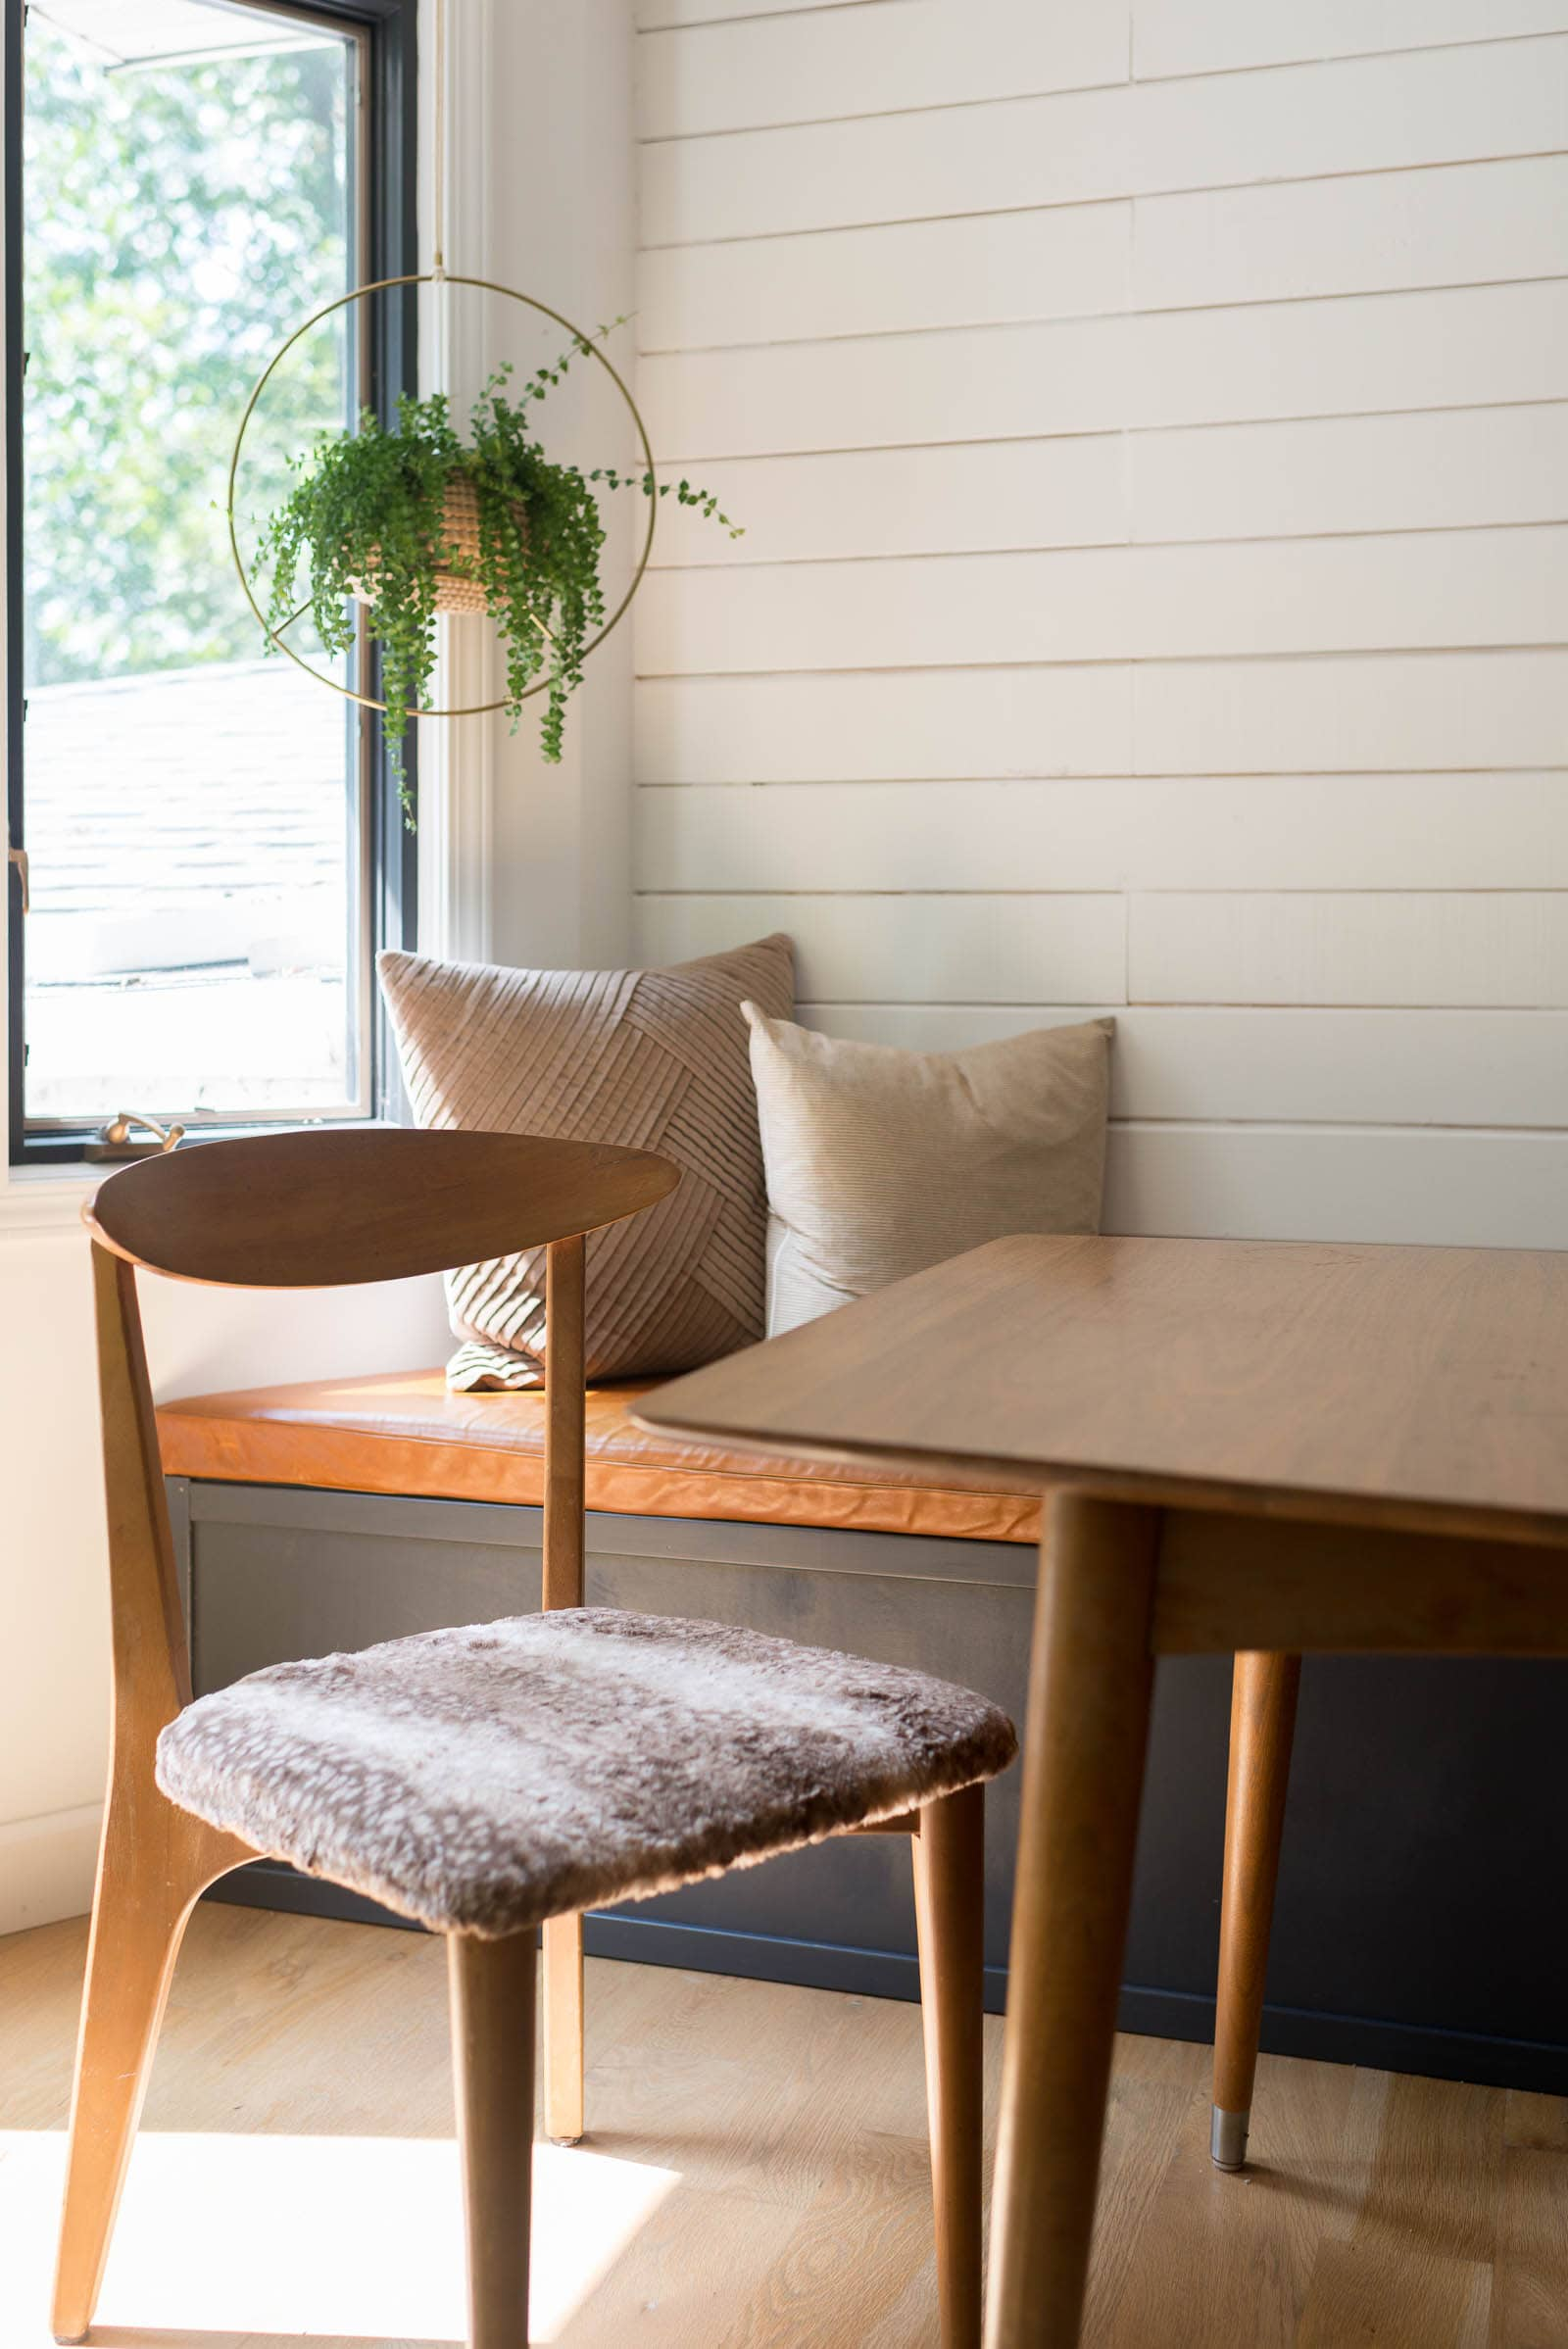 Midcentury chair by banquette in dining room